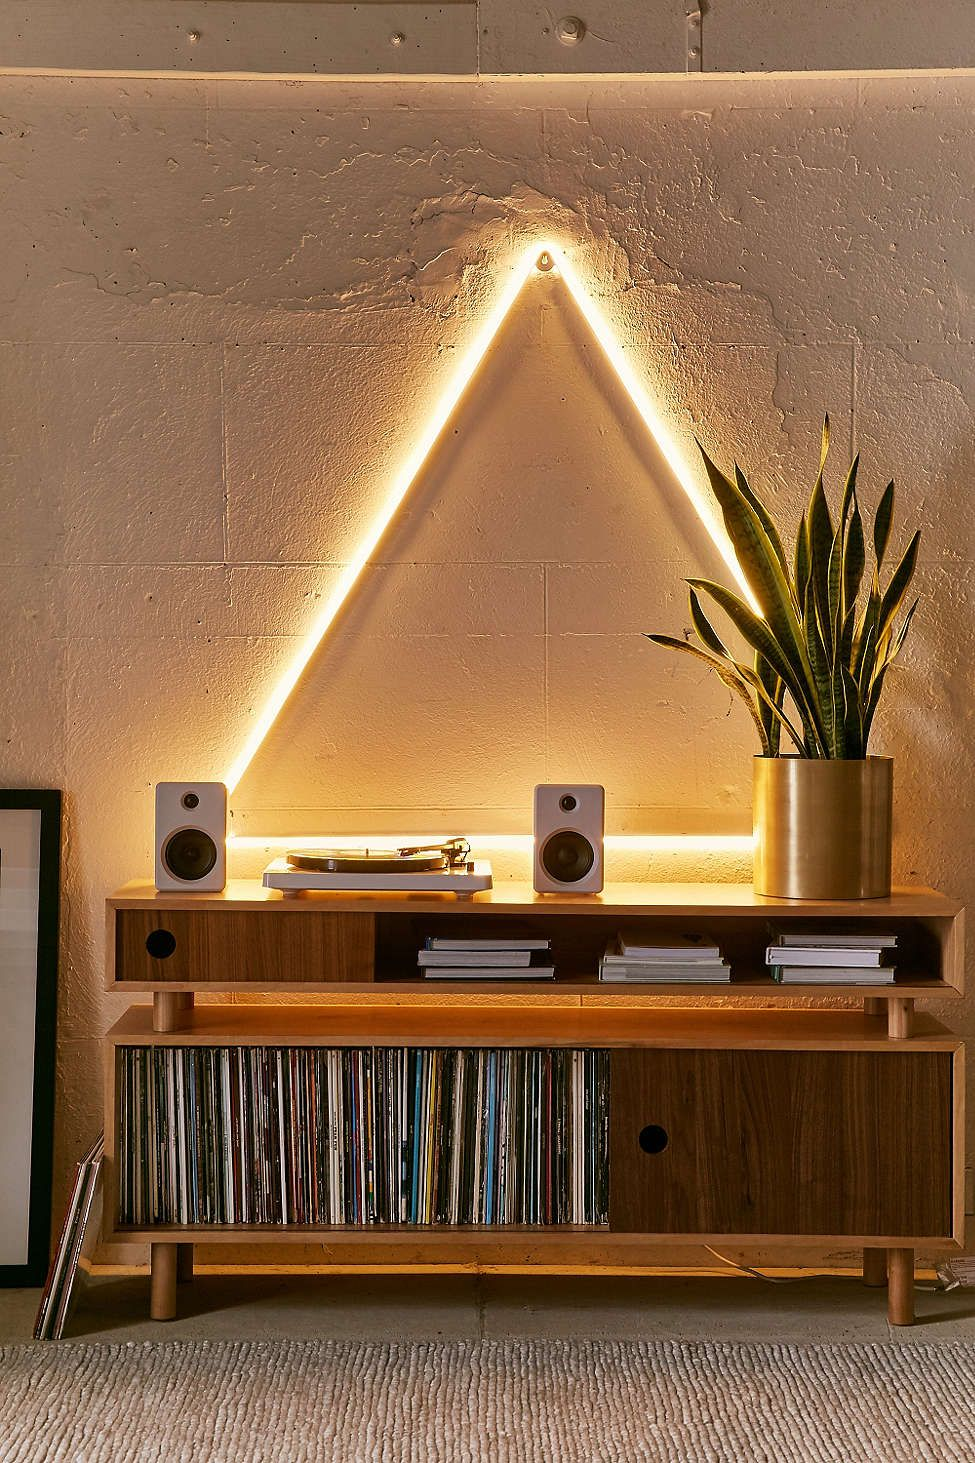 Meuble Triangle Triangle Decor Wall Light Idee Pinterest Décoration